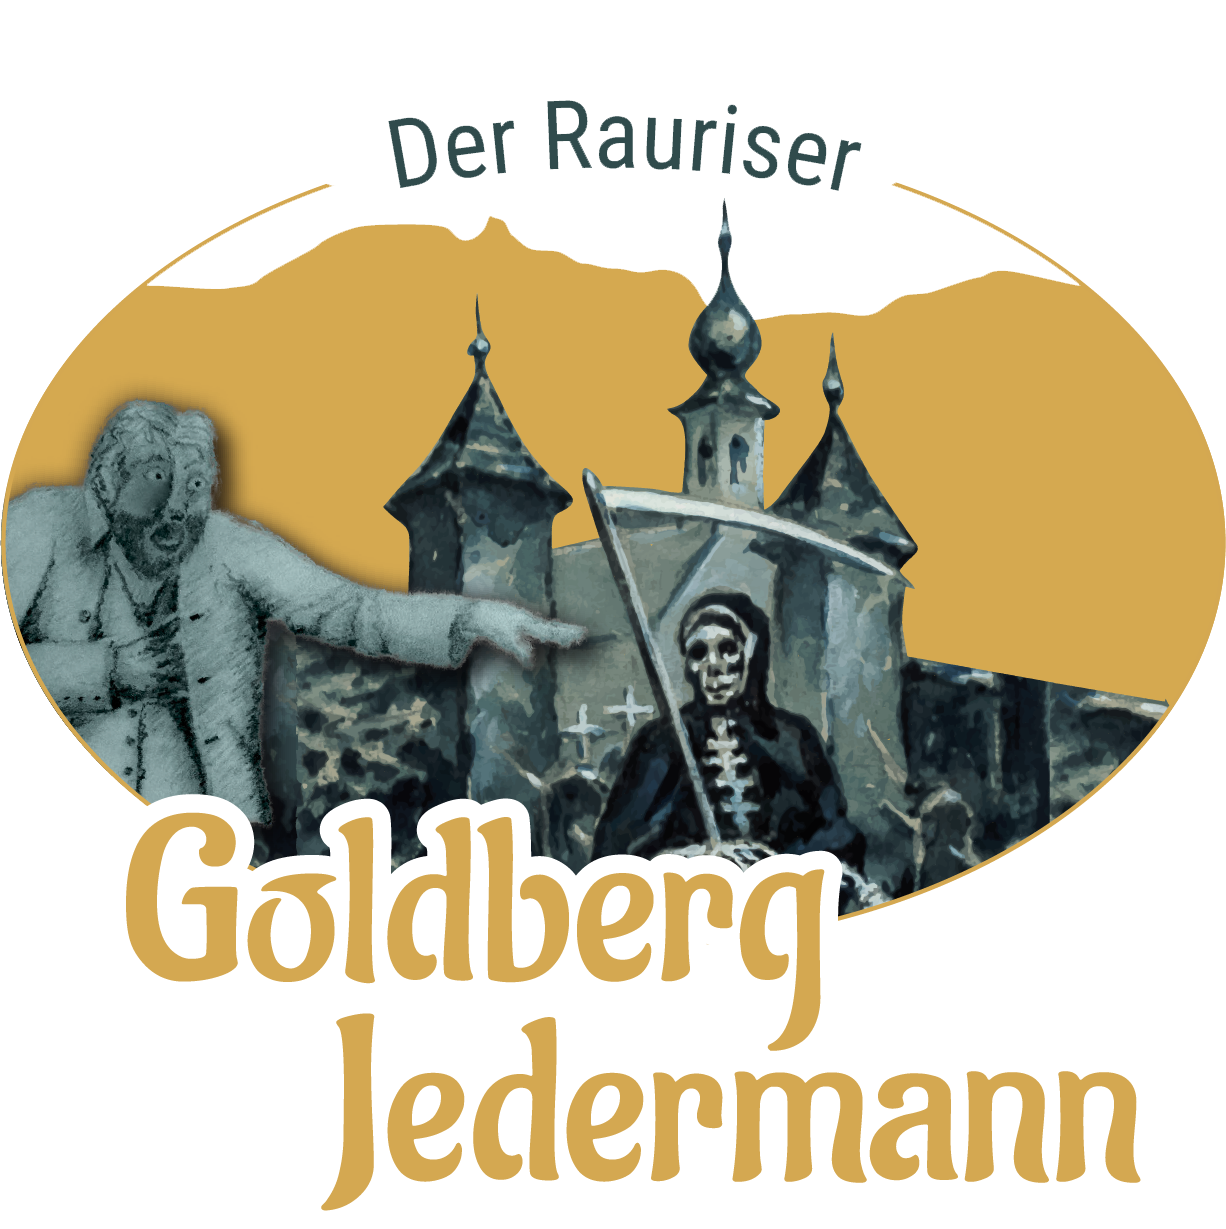 Der Rauriser Goldberg Jedermann